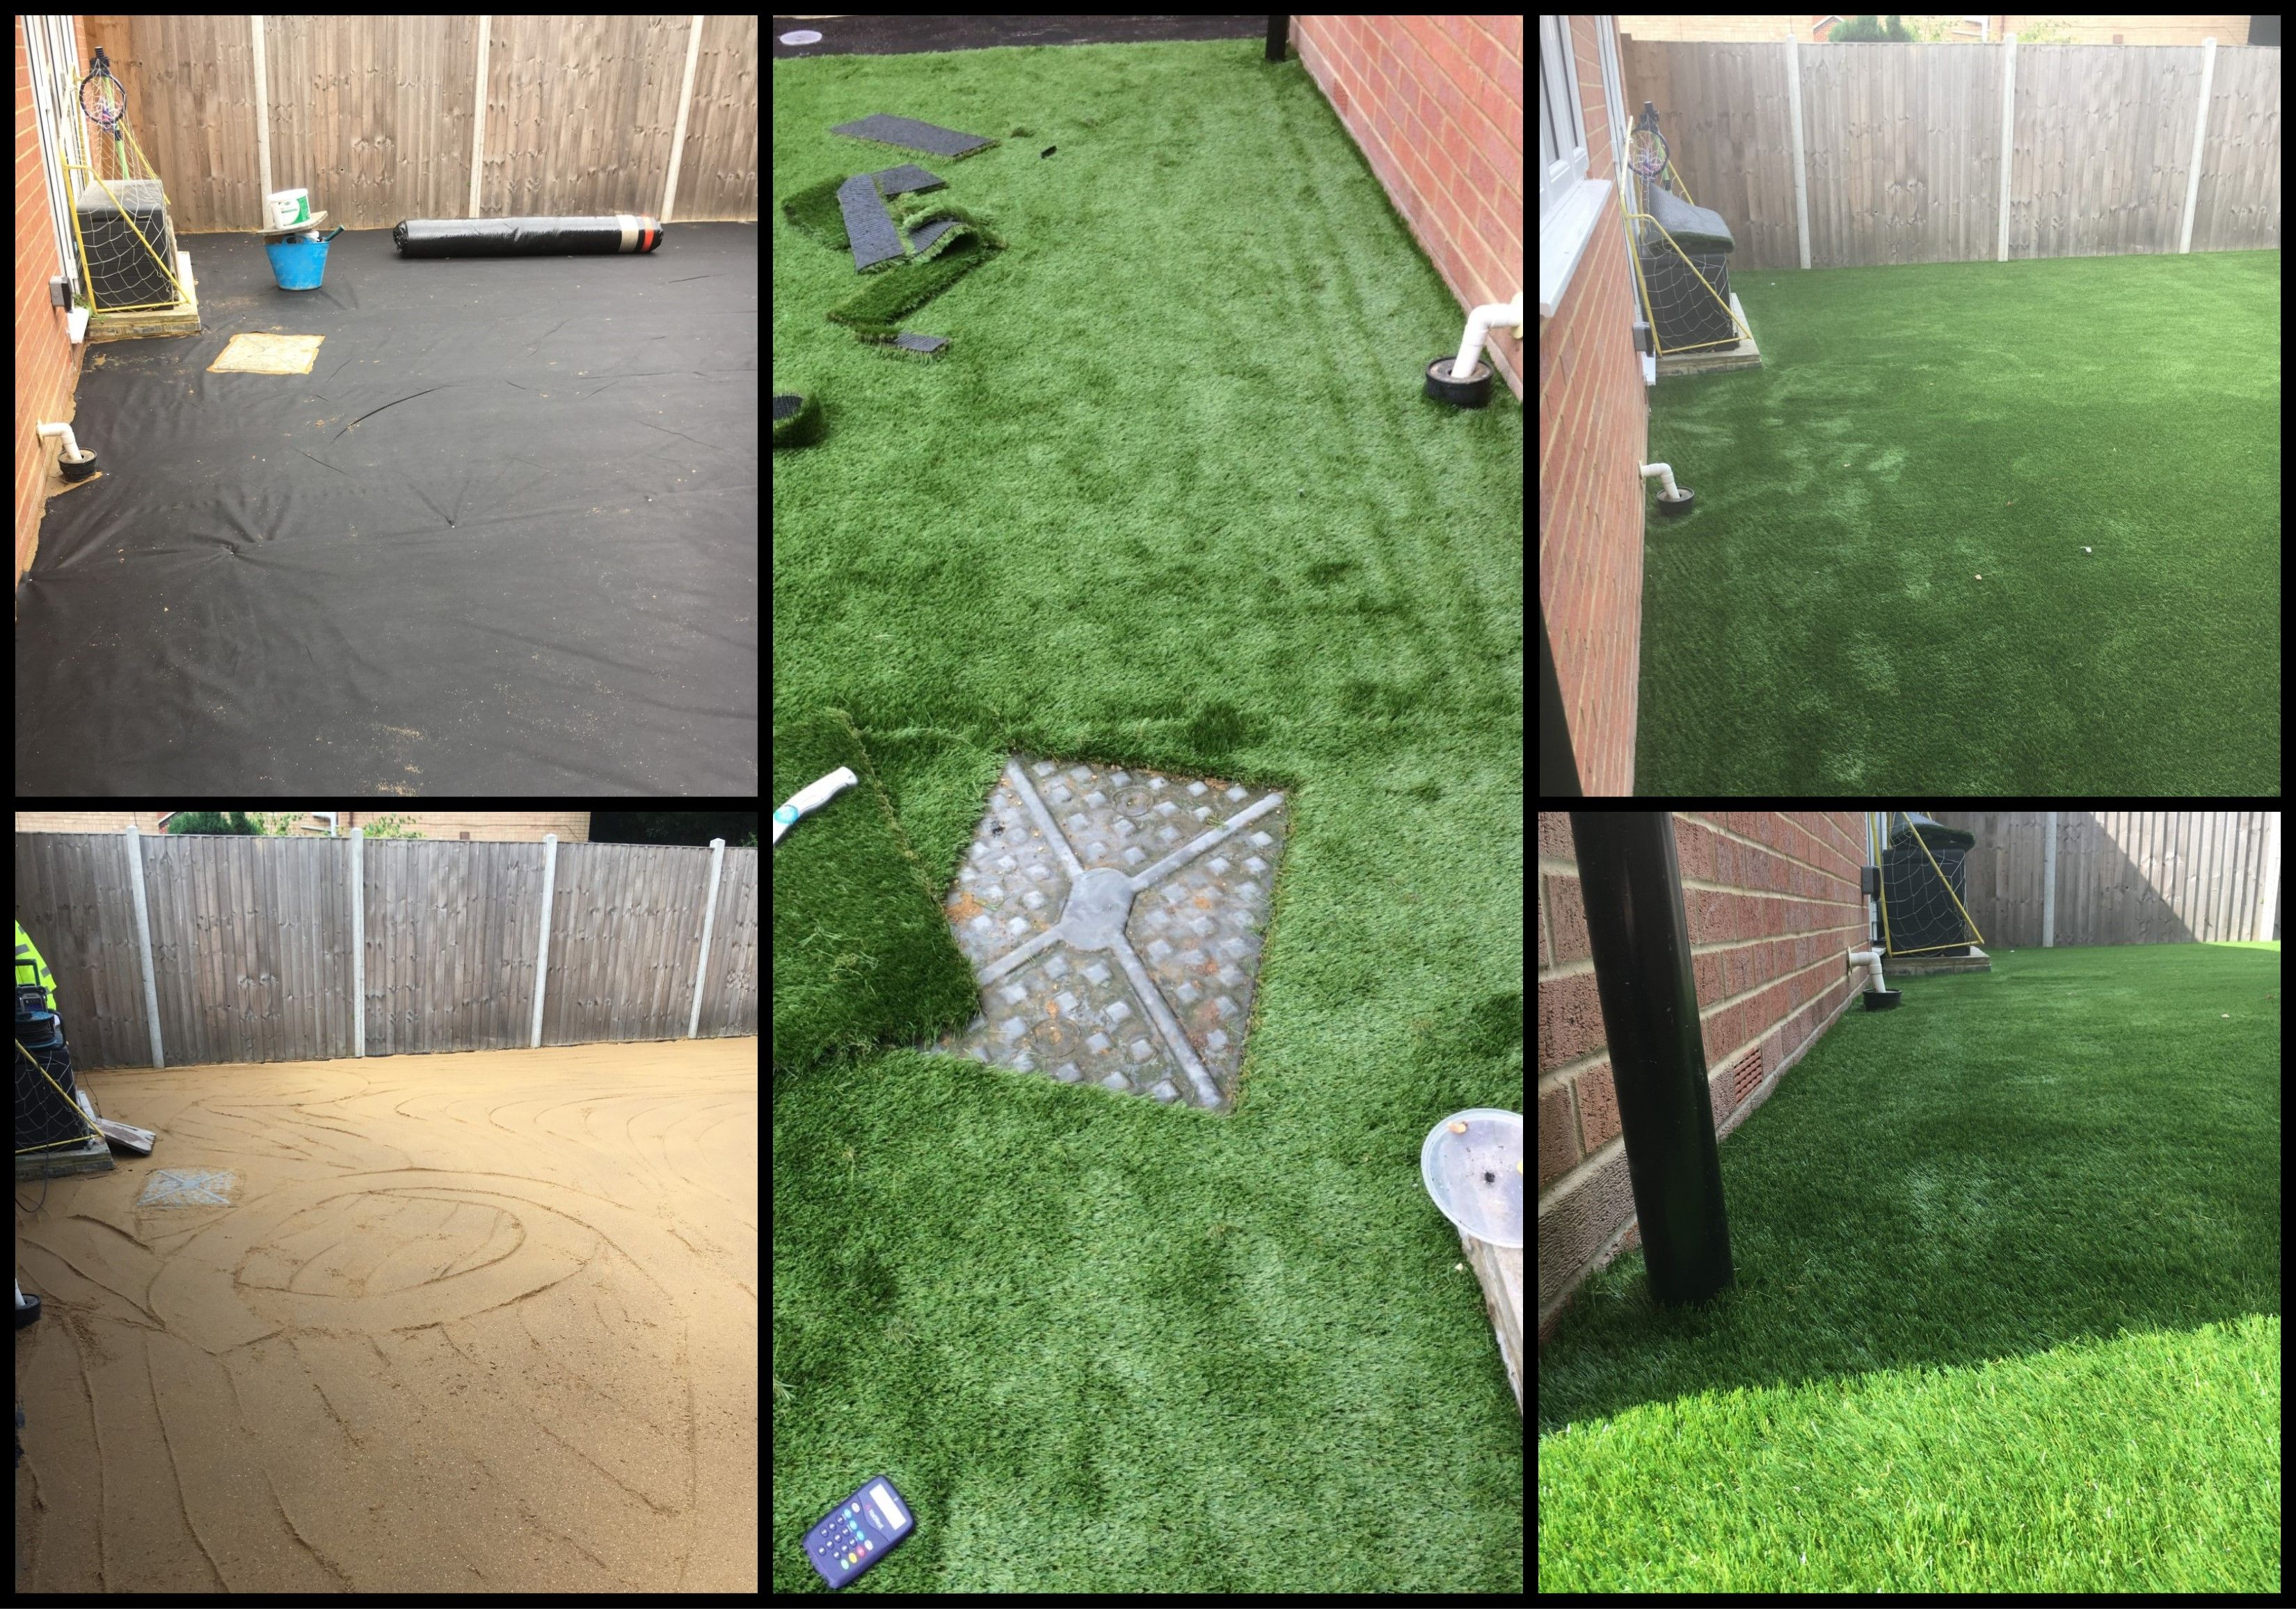 If you are thinking of laying artificial grass and have a manhole